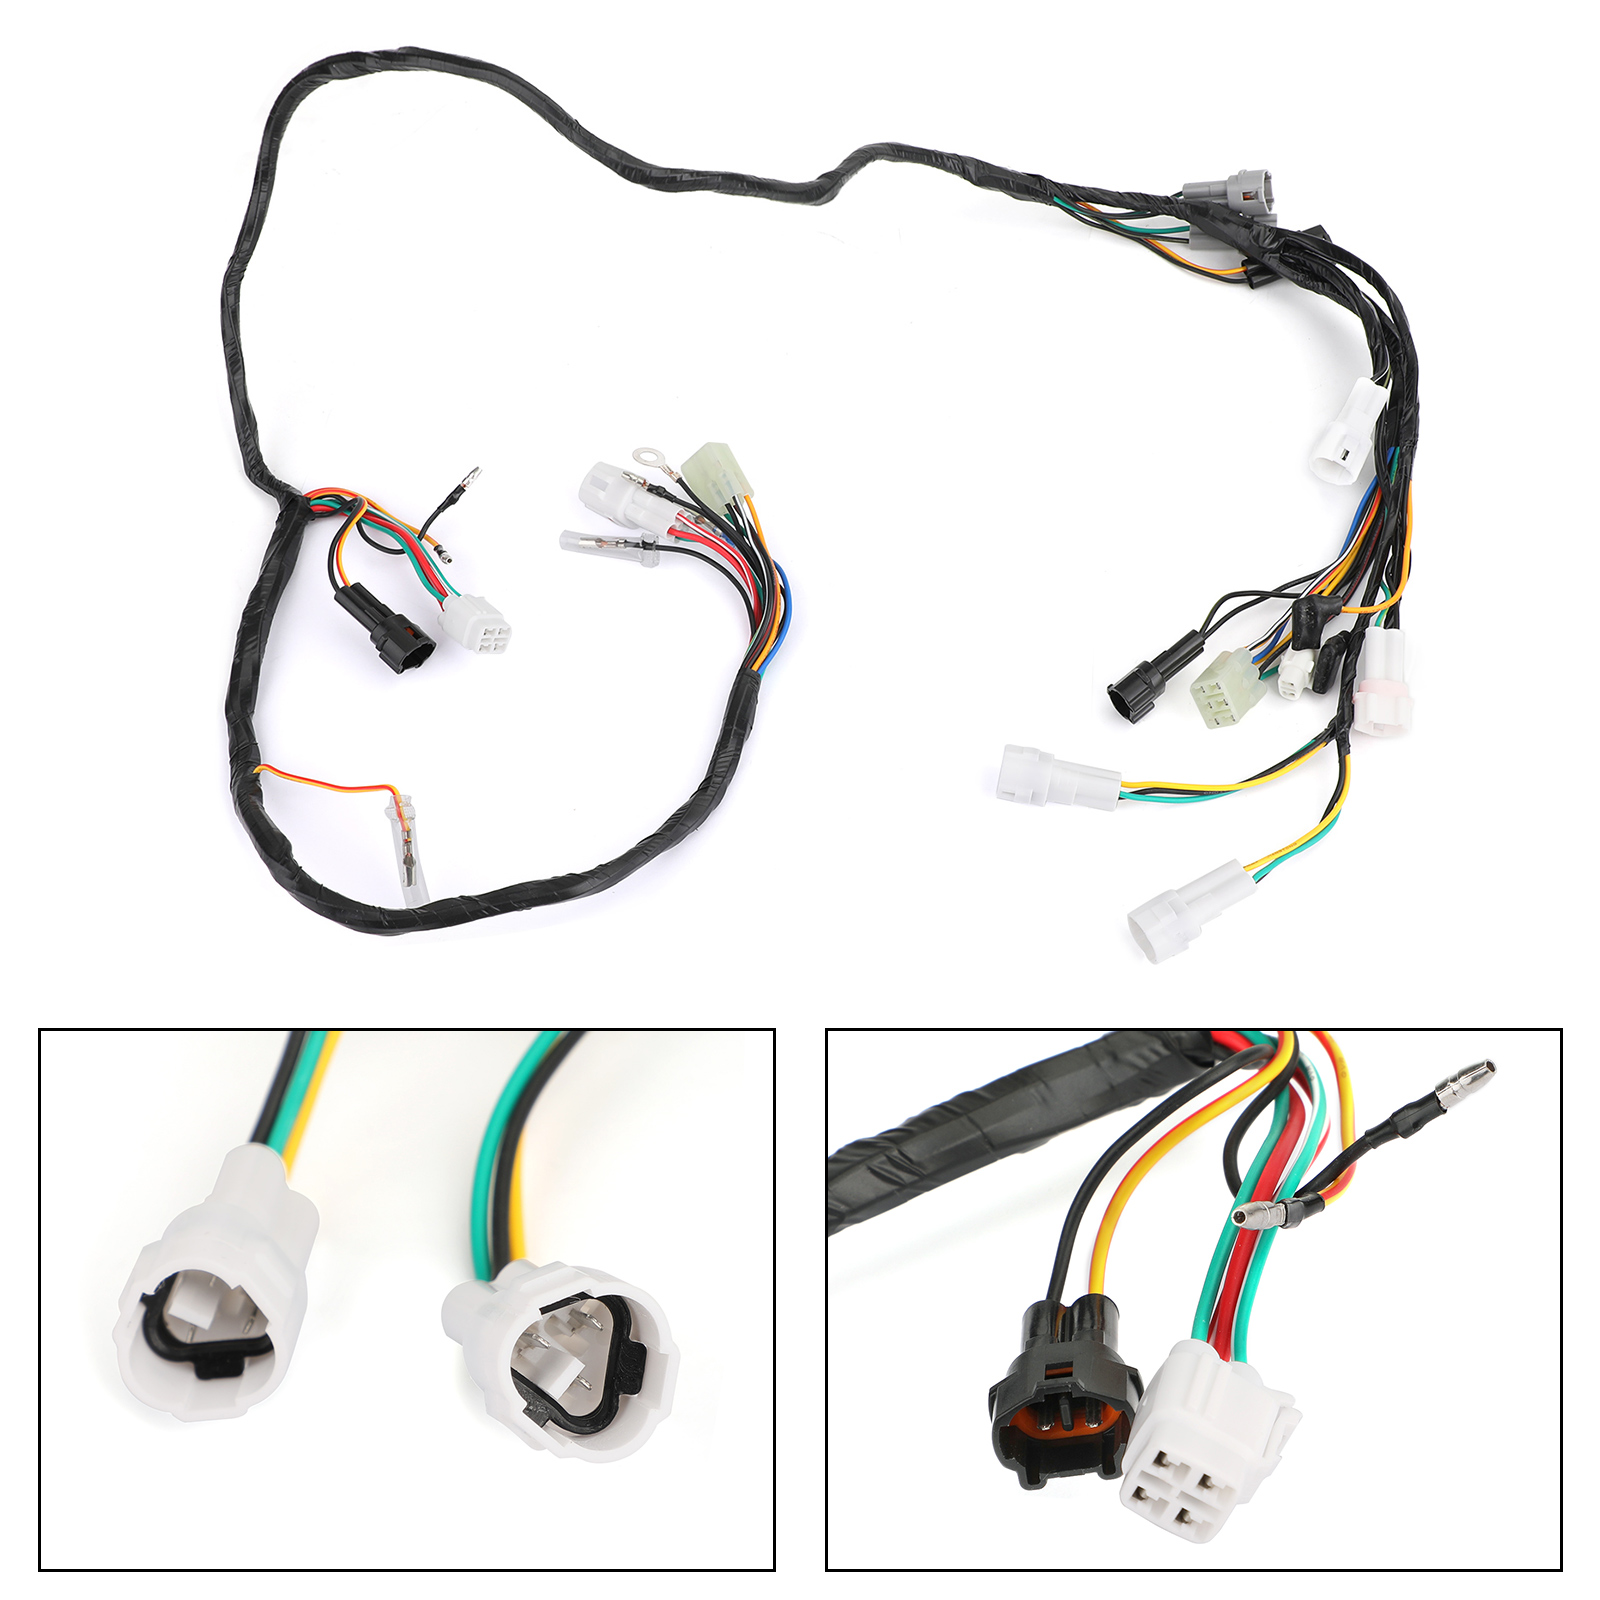 Artudatech Wiring Harness 3GG-10 COMPLETE fit for Yamaha Banshee 350 YFZ350 2002 2003 2004 2005 2006 5FK-82590-00-00 Motor Parts